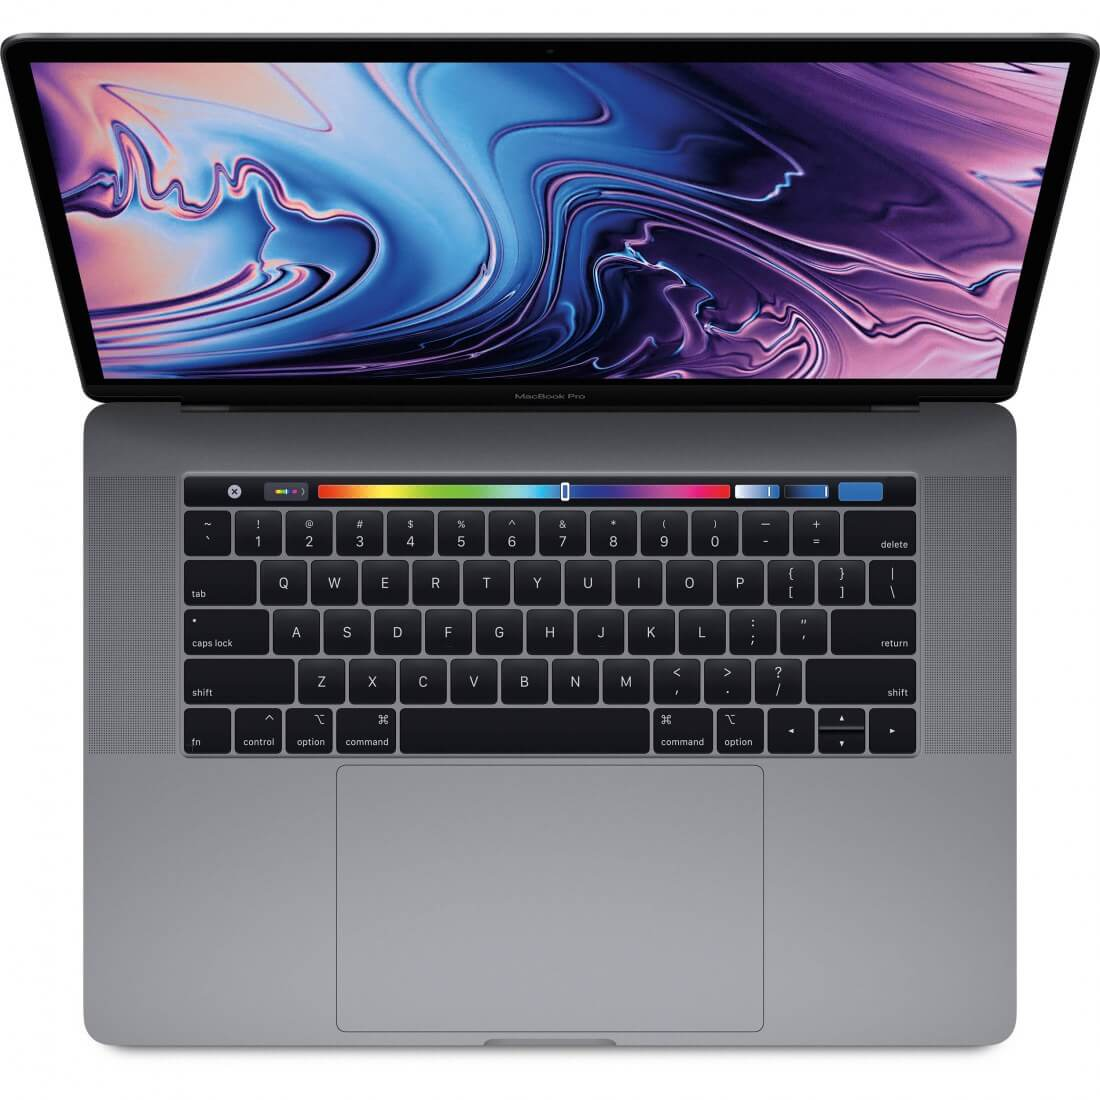 MacBook Pro 15″ (Mid 2018) Core i9/16GB/512GB